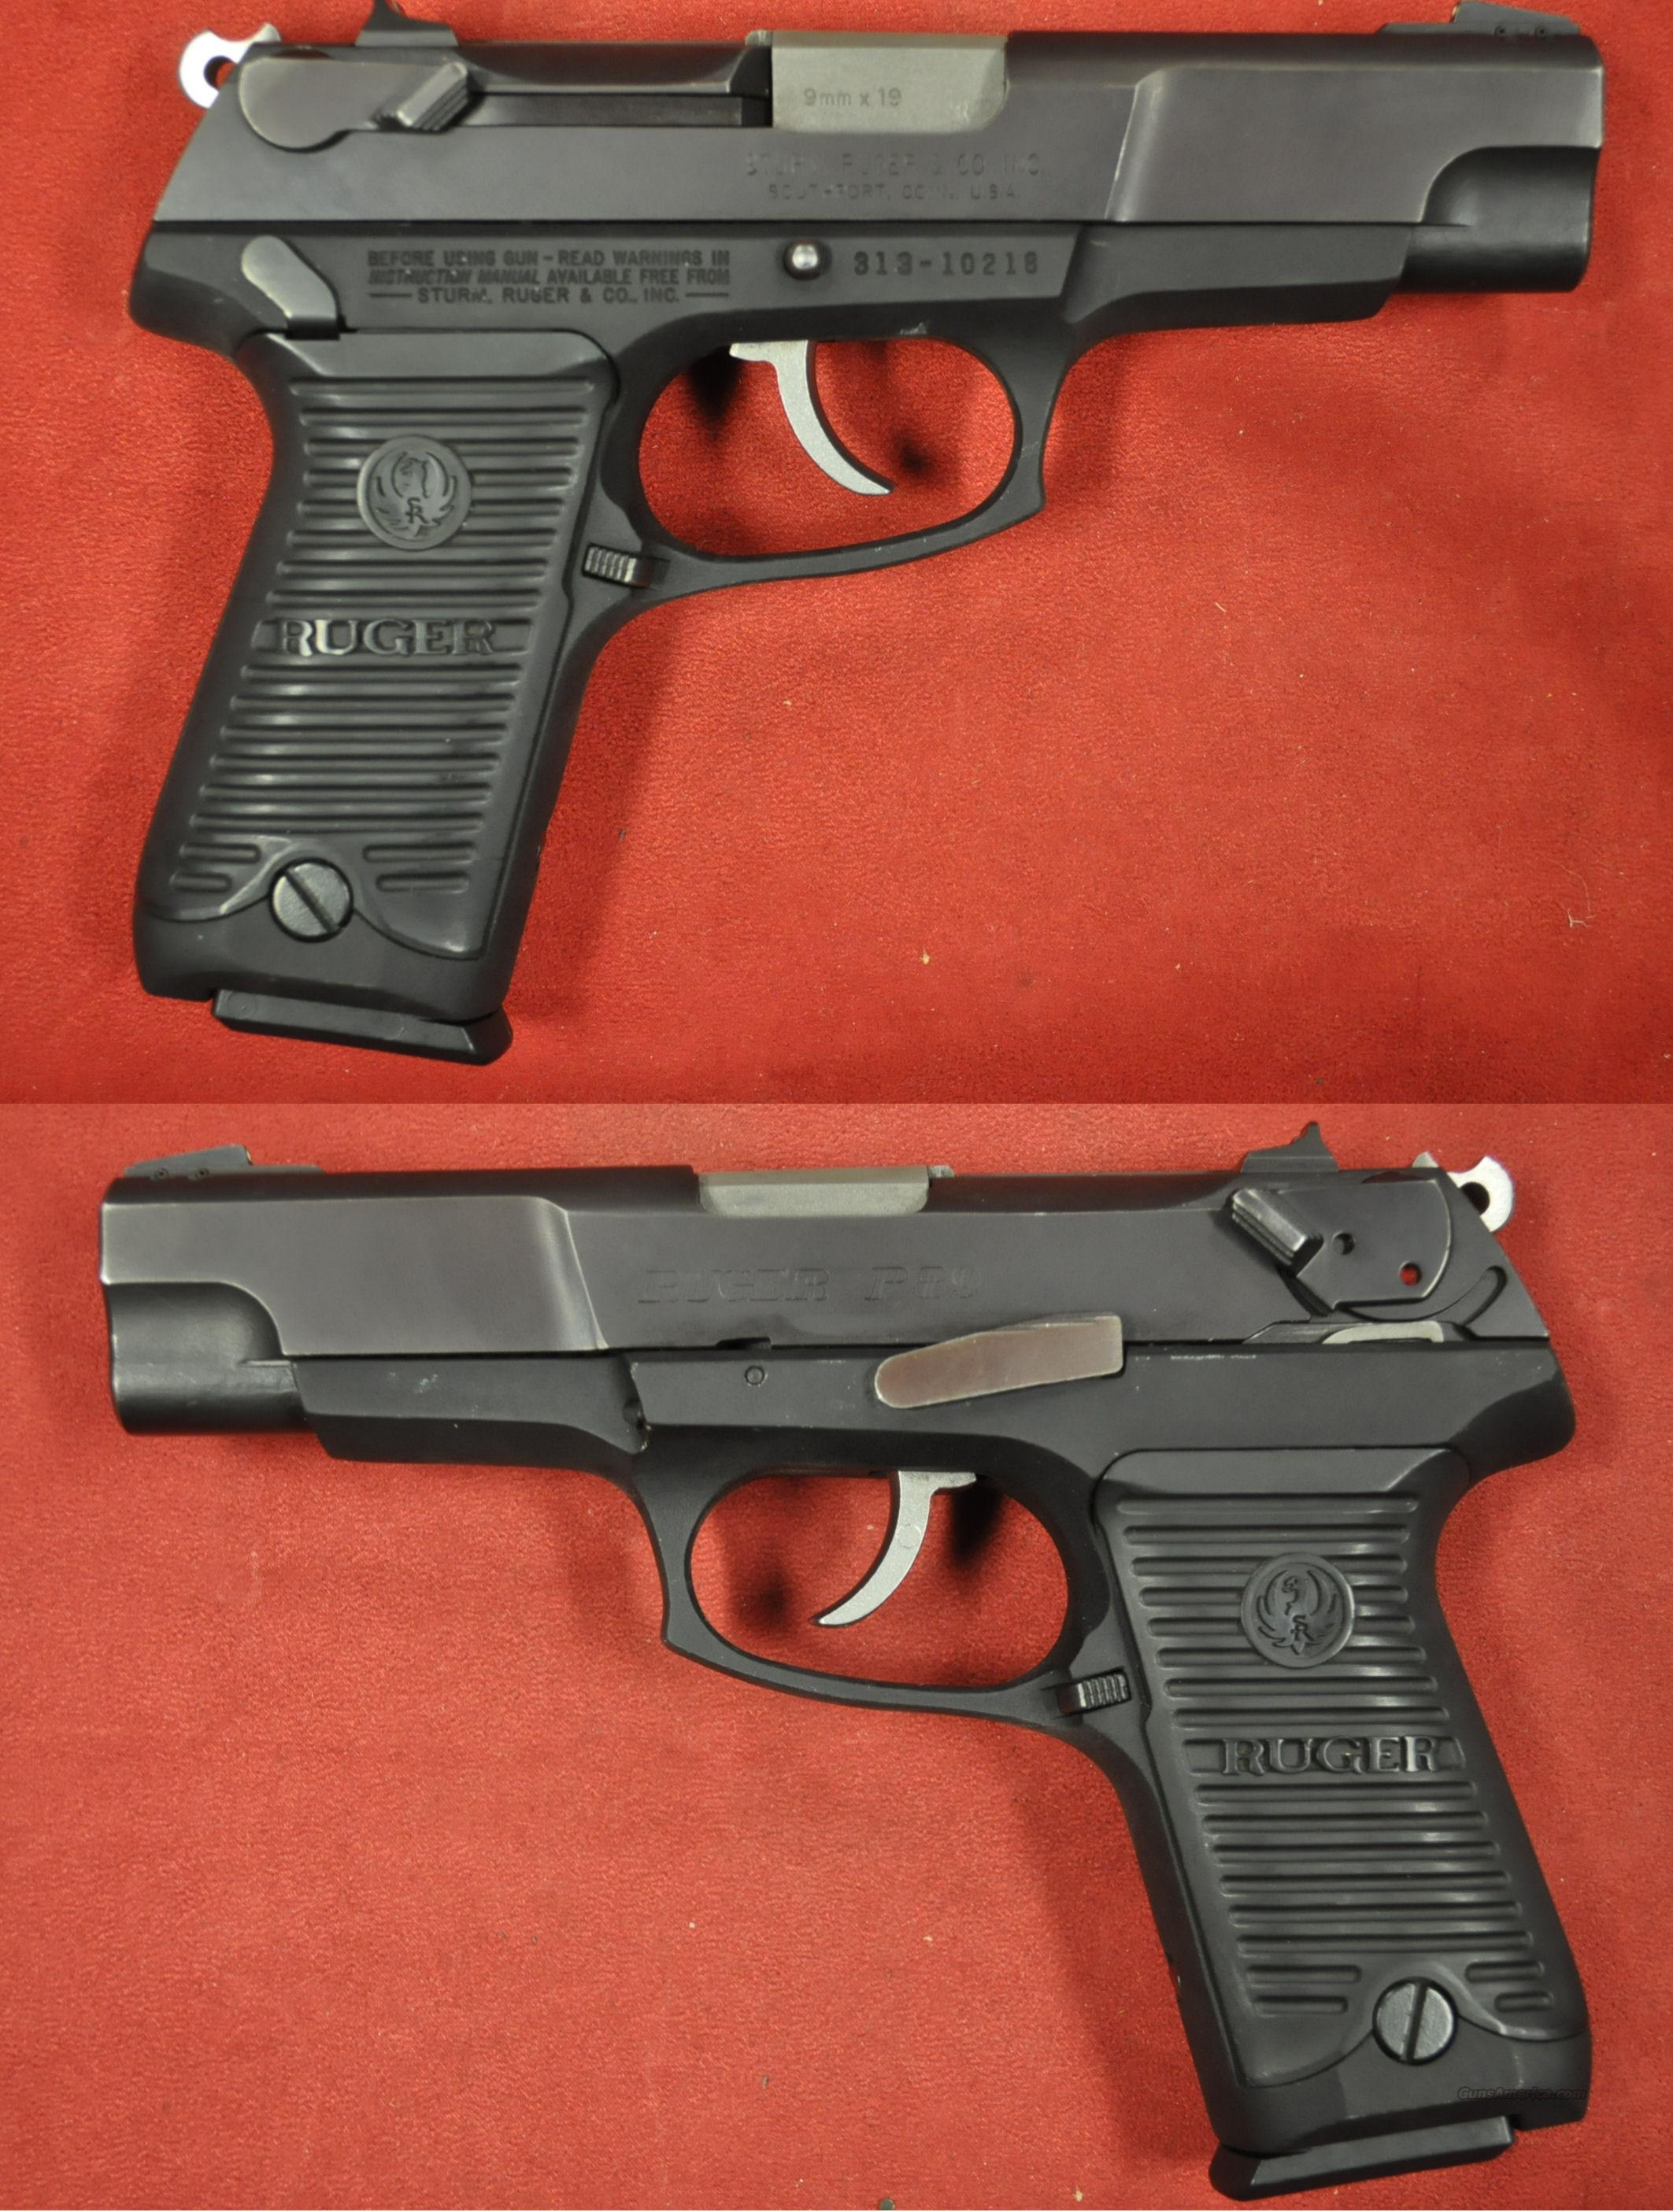 Ruger P-89 double action 9mm   Guns > Pistols > Ruger Semi-Auto Pistols > P-Series